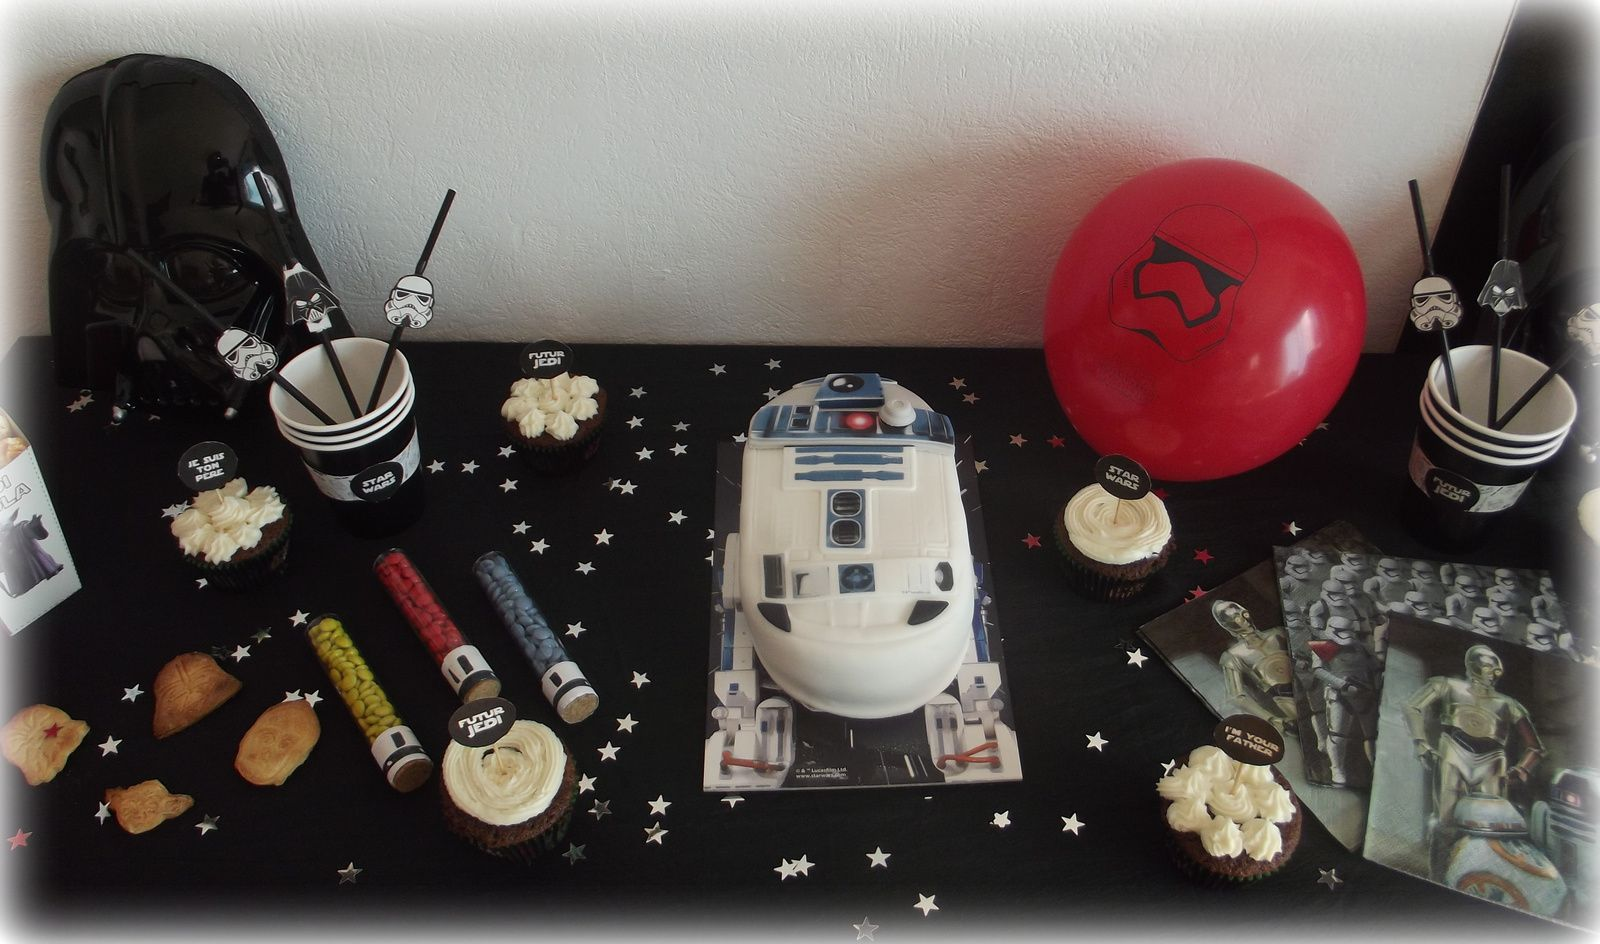 Une birthday party star wars les micmacs de malova - Deco star wars anniversaire ...